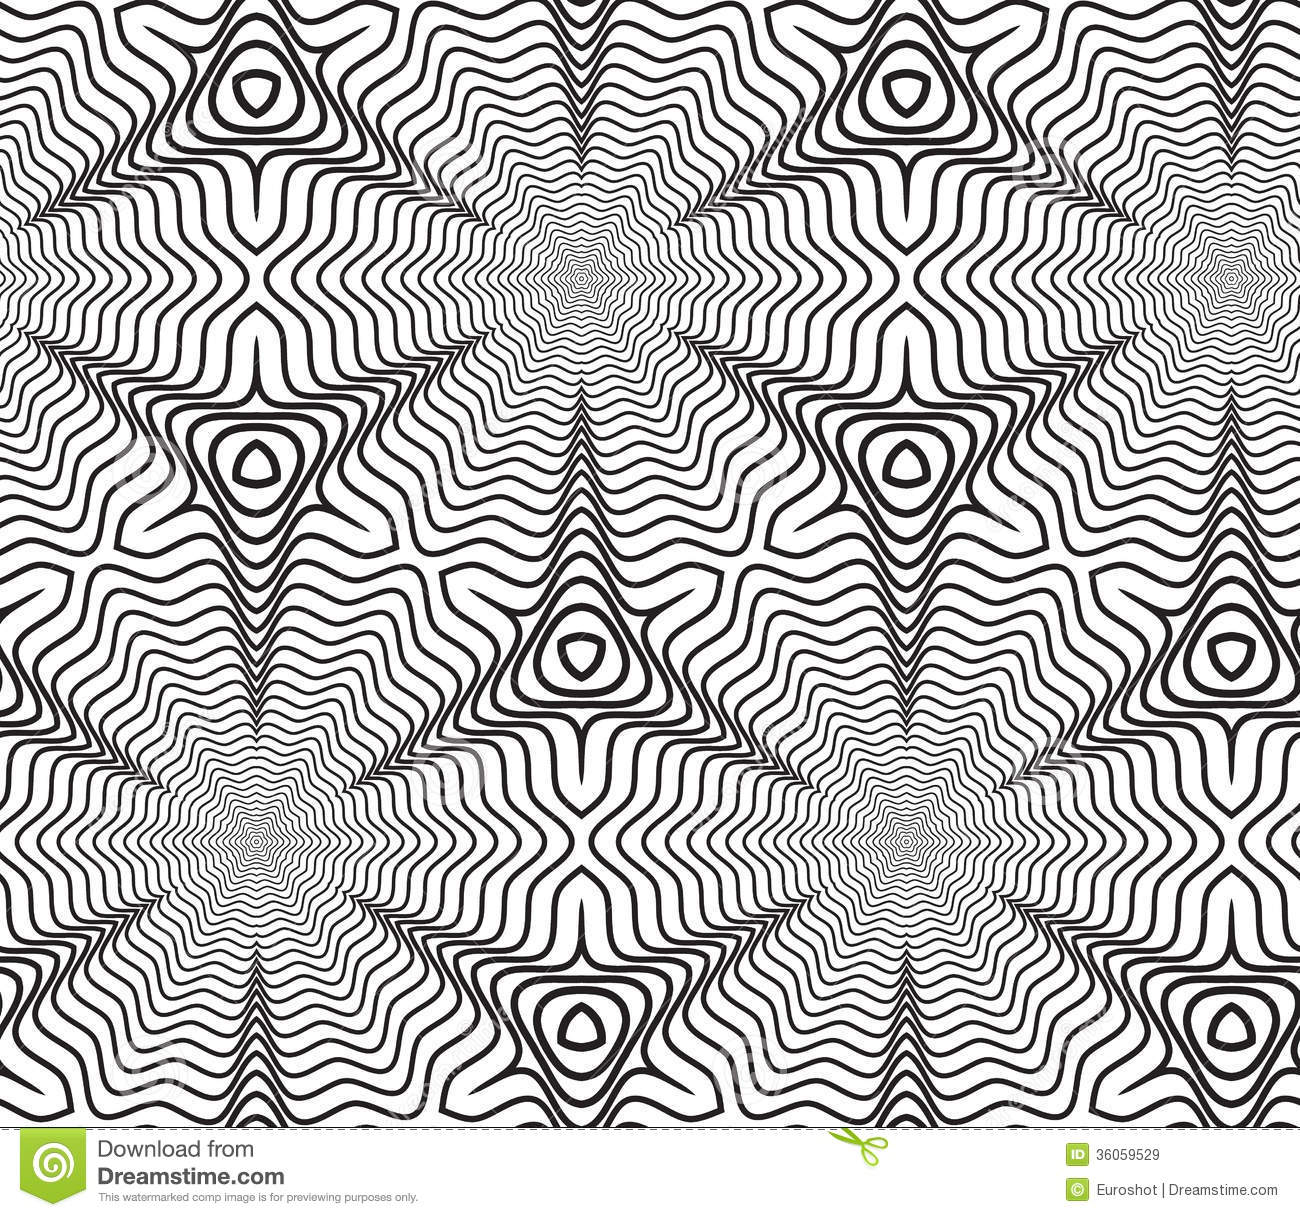 Black And White Line Designs : Black and white op art design vector seamless pattern